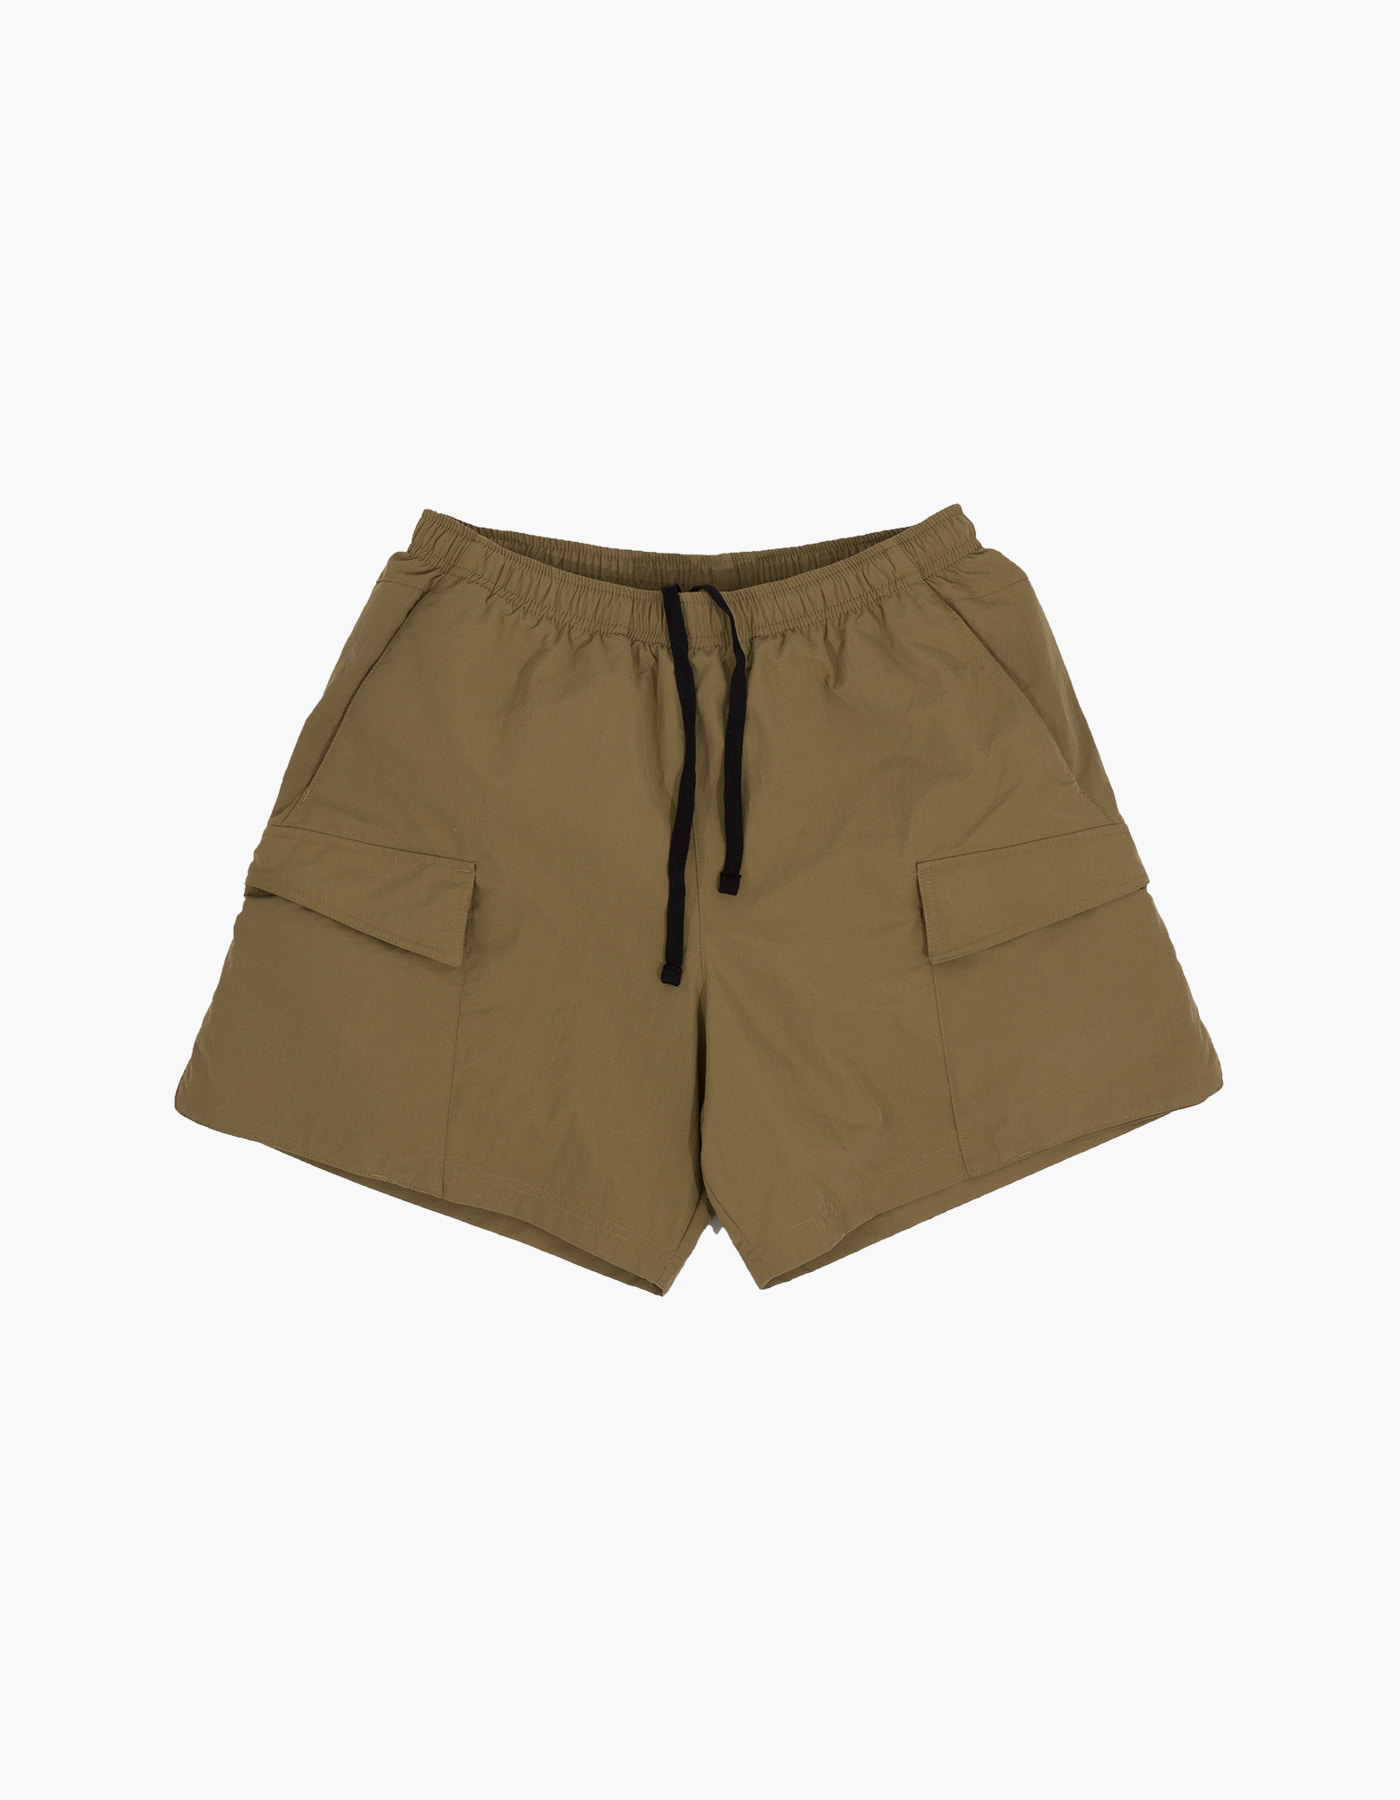 NYLON TAFFETA WASHER SHORTS / KHAKI